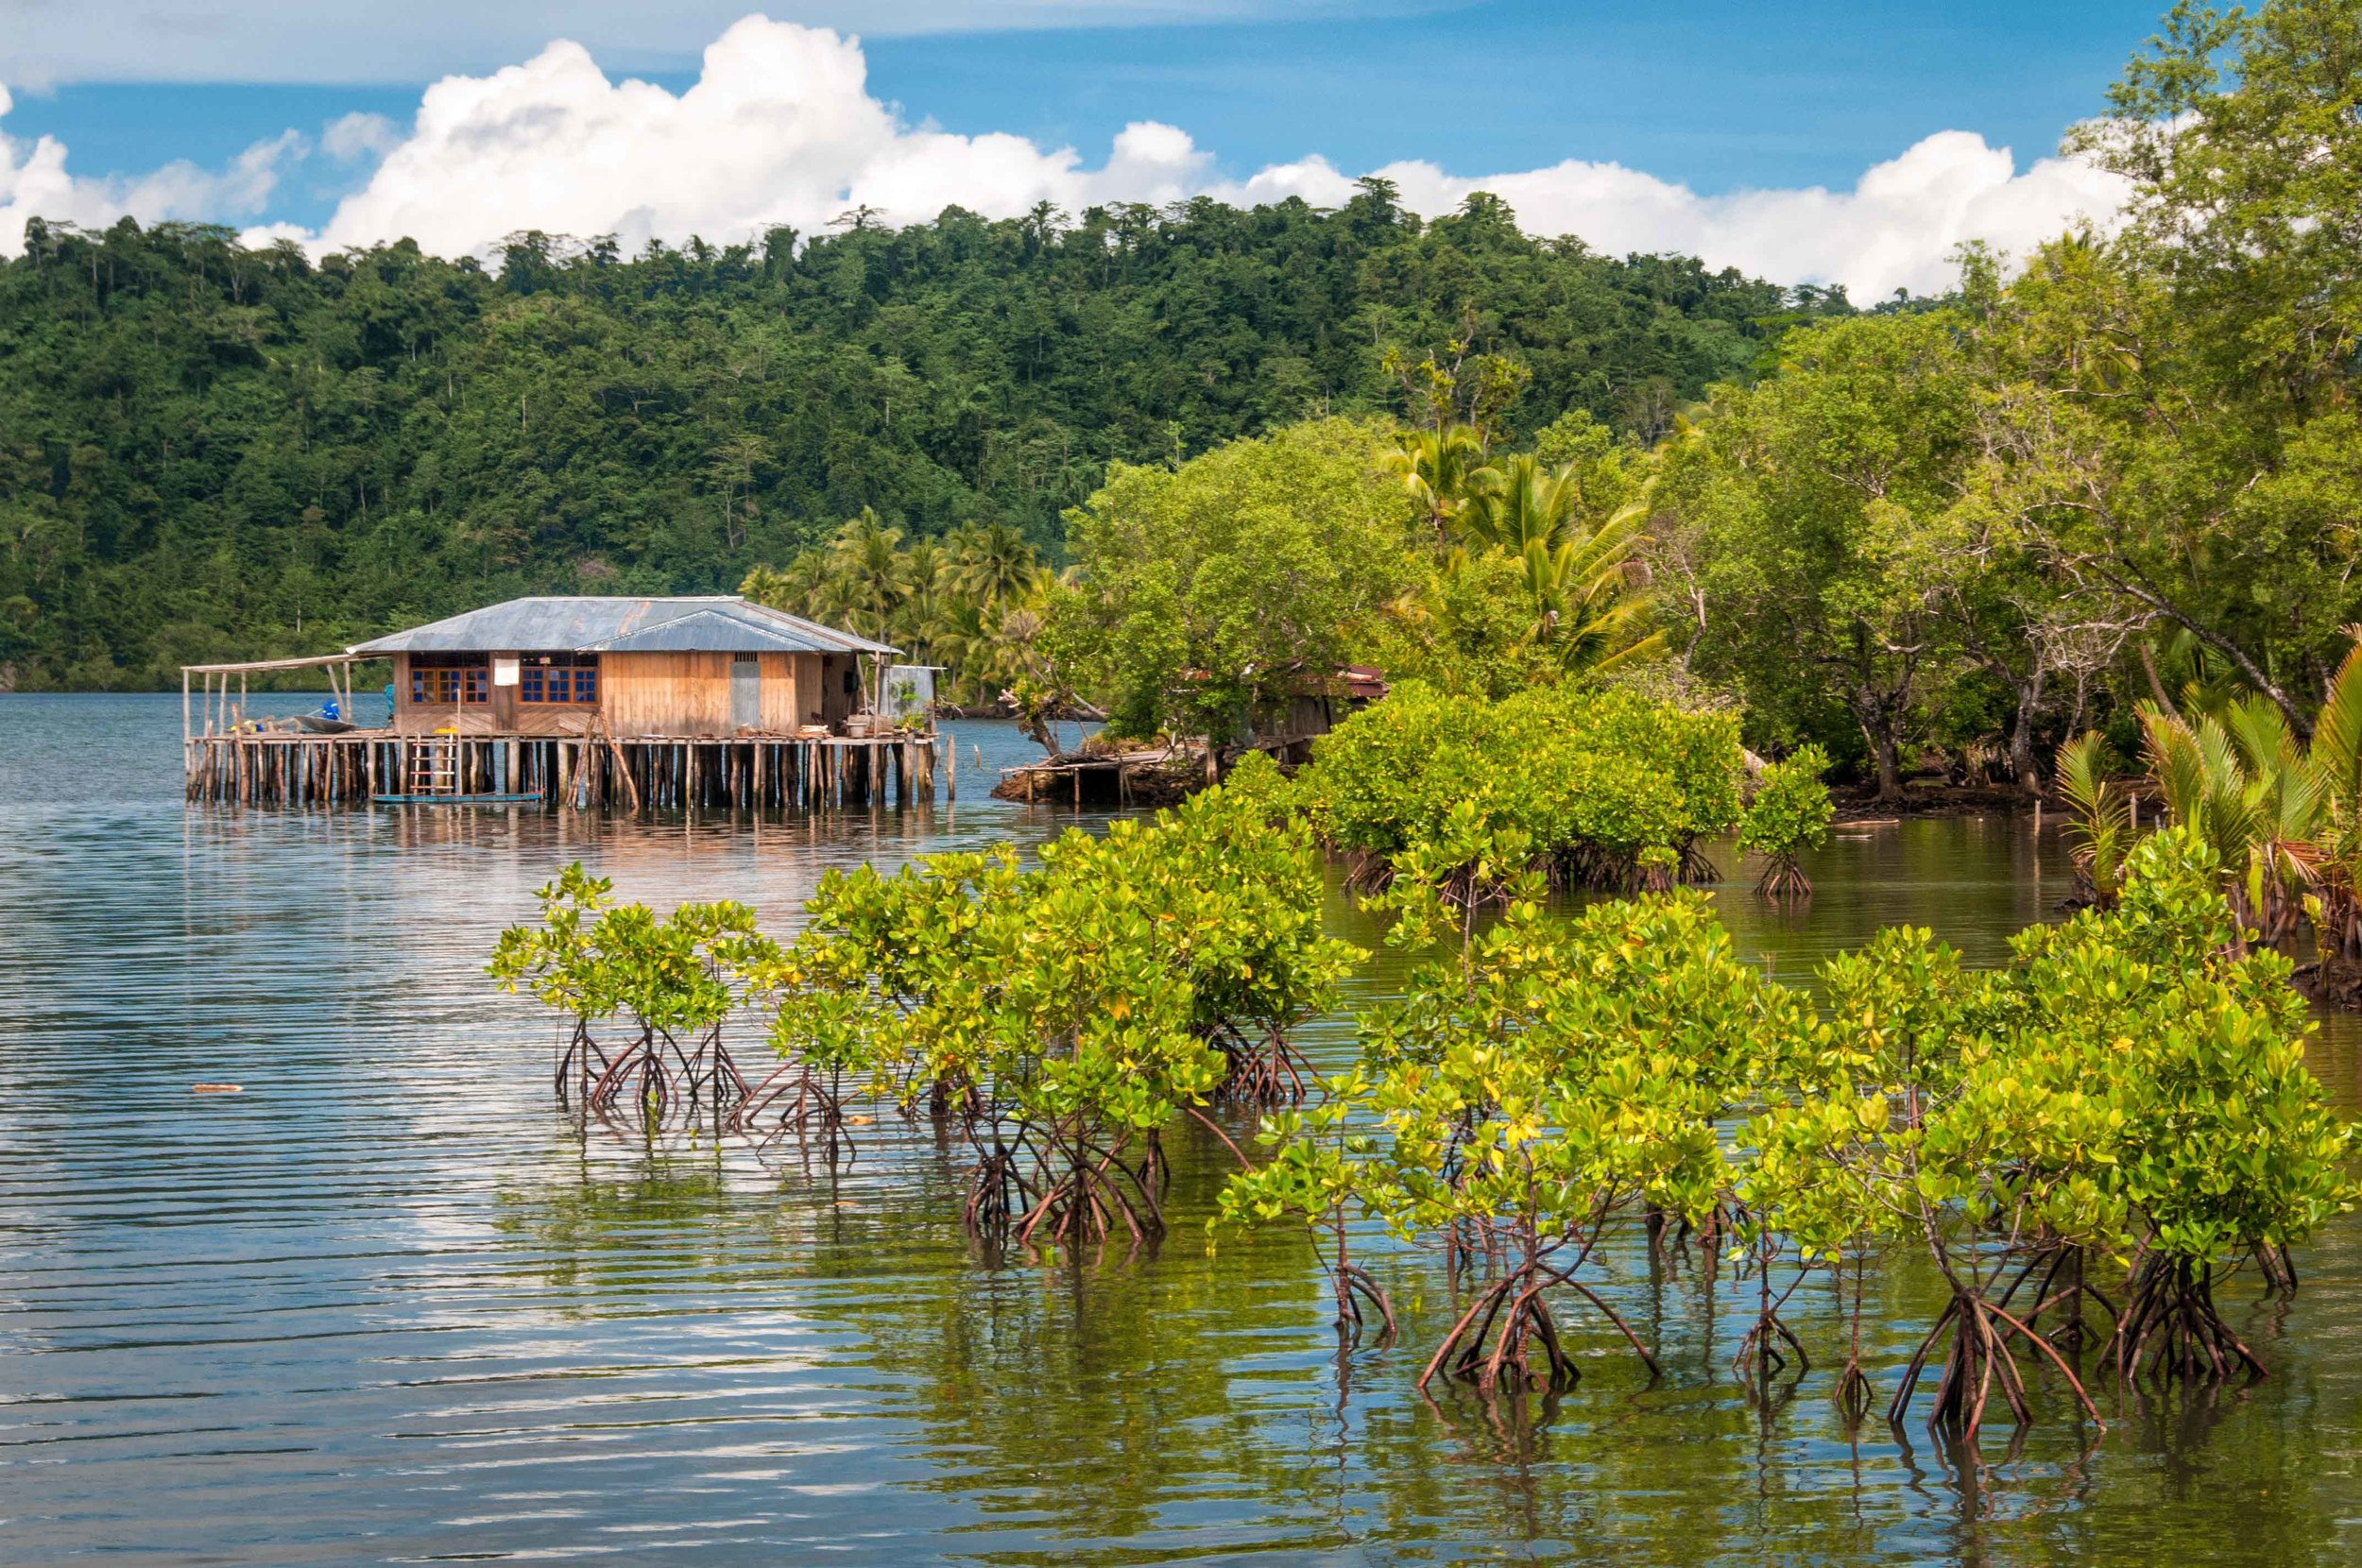 The benefits of the Mangroves:    Traditional medicine   Hunted food   Firewood and building materials   Barrier against erosion from waves, cyclones and tsunamis   Process sewage to protect human health   Filter sediment that threatens health and productivity of coral reefs and seagrass meadows